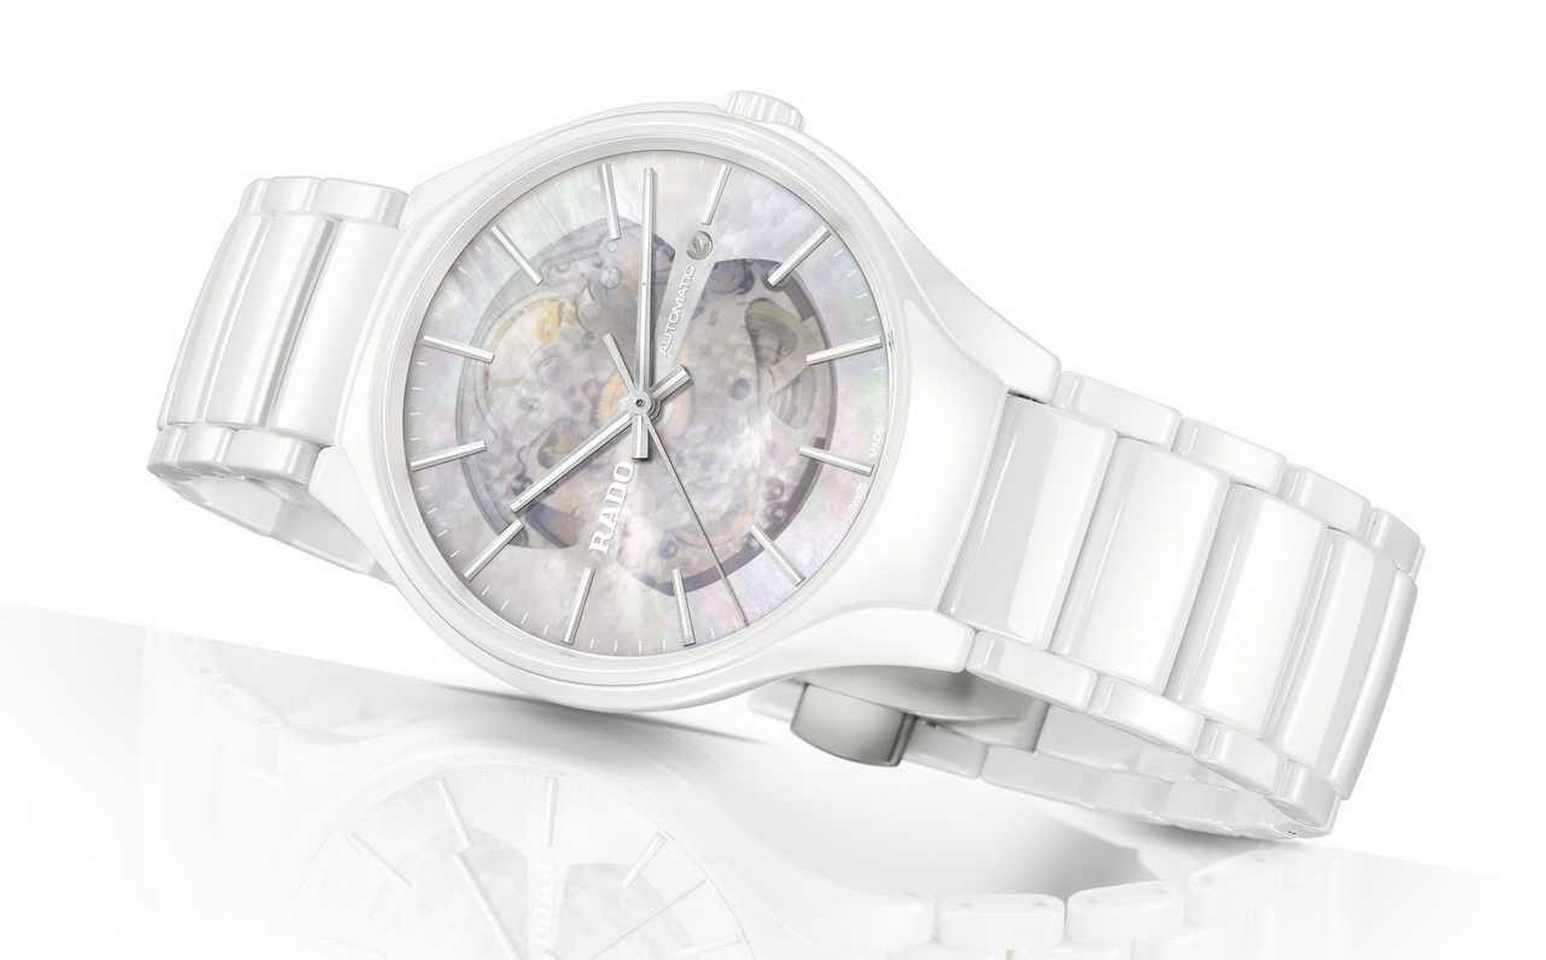 anteprima-baselworld-2016-rado-true-light-ref-734-0106-3-090-ref-734-0101-3-090-prezzo-price_0-1002